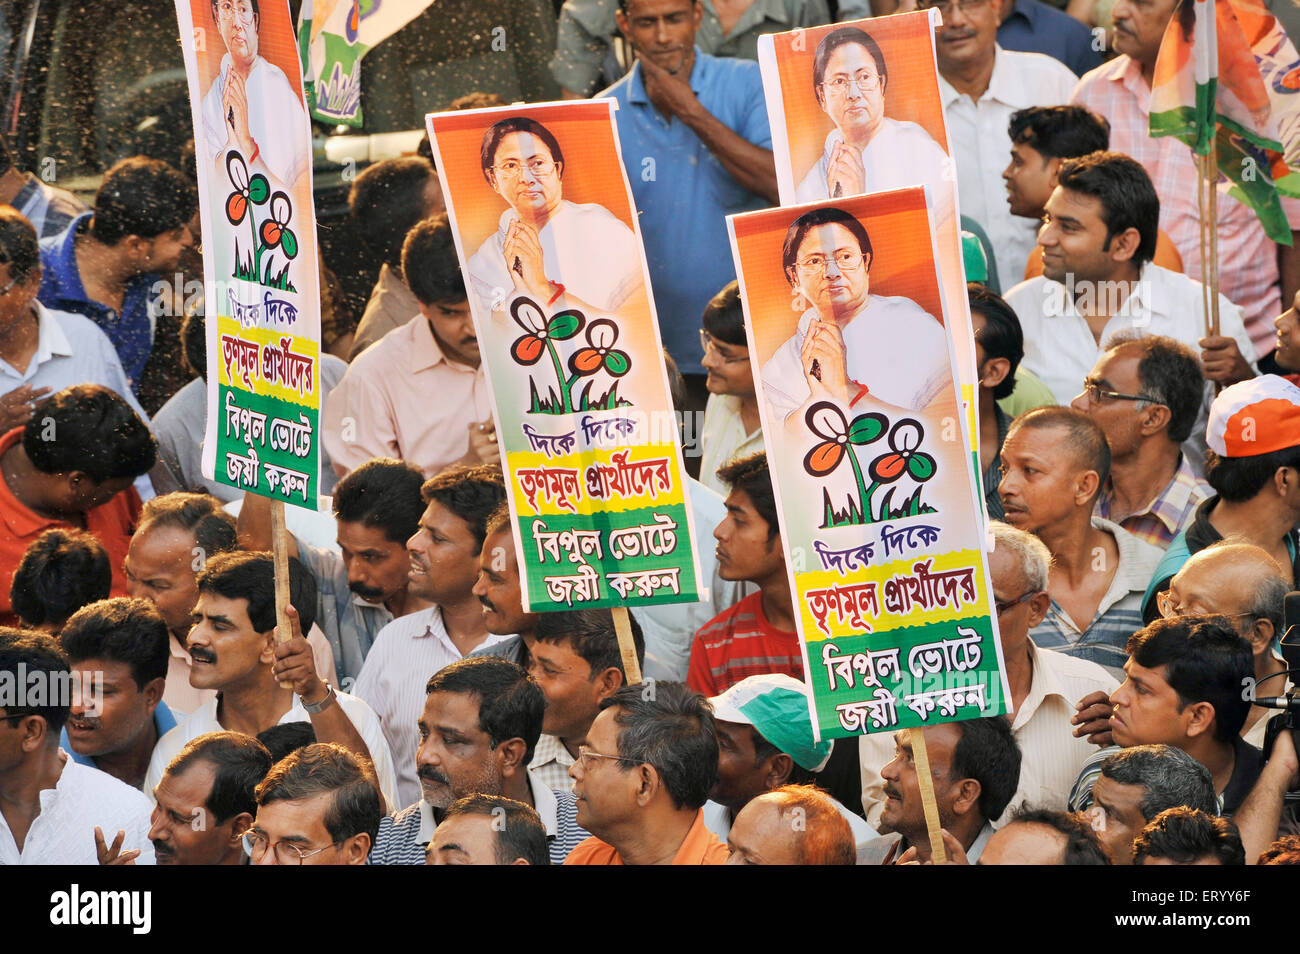 Trinamul Congress Election banners at their rally in Gariahat  in Kolkata India - Stock Image